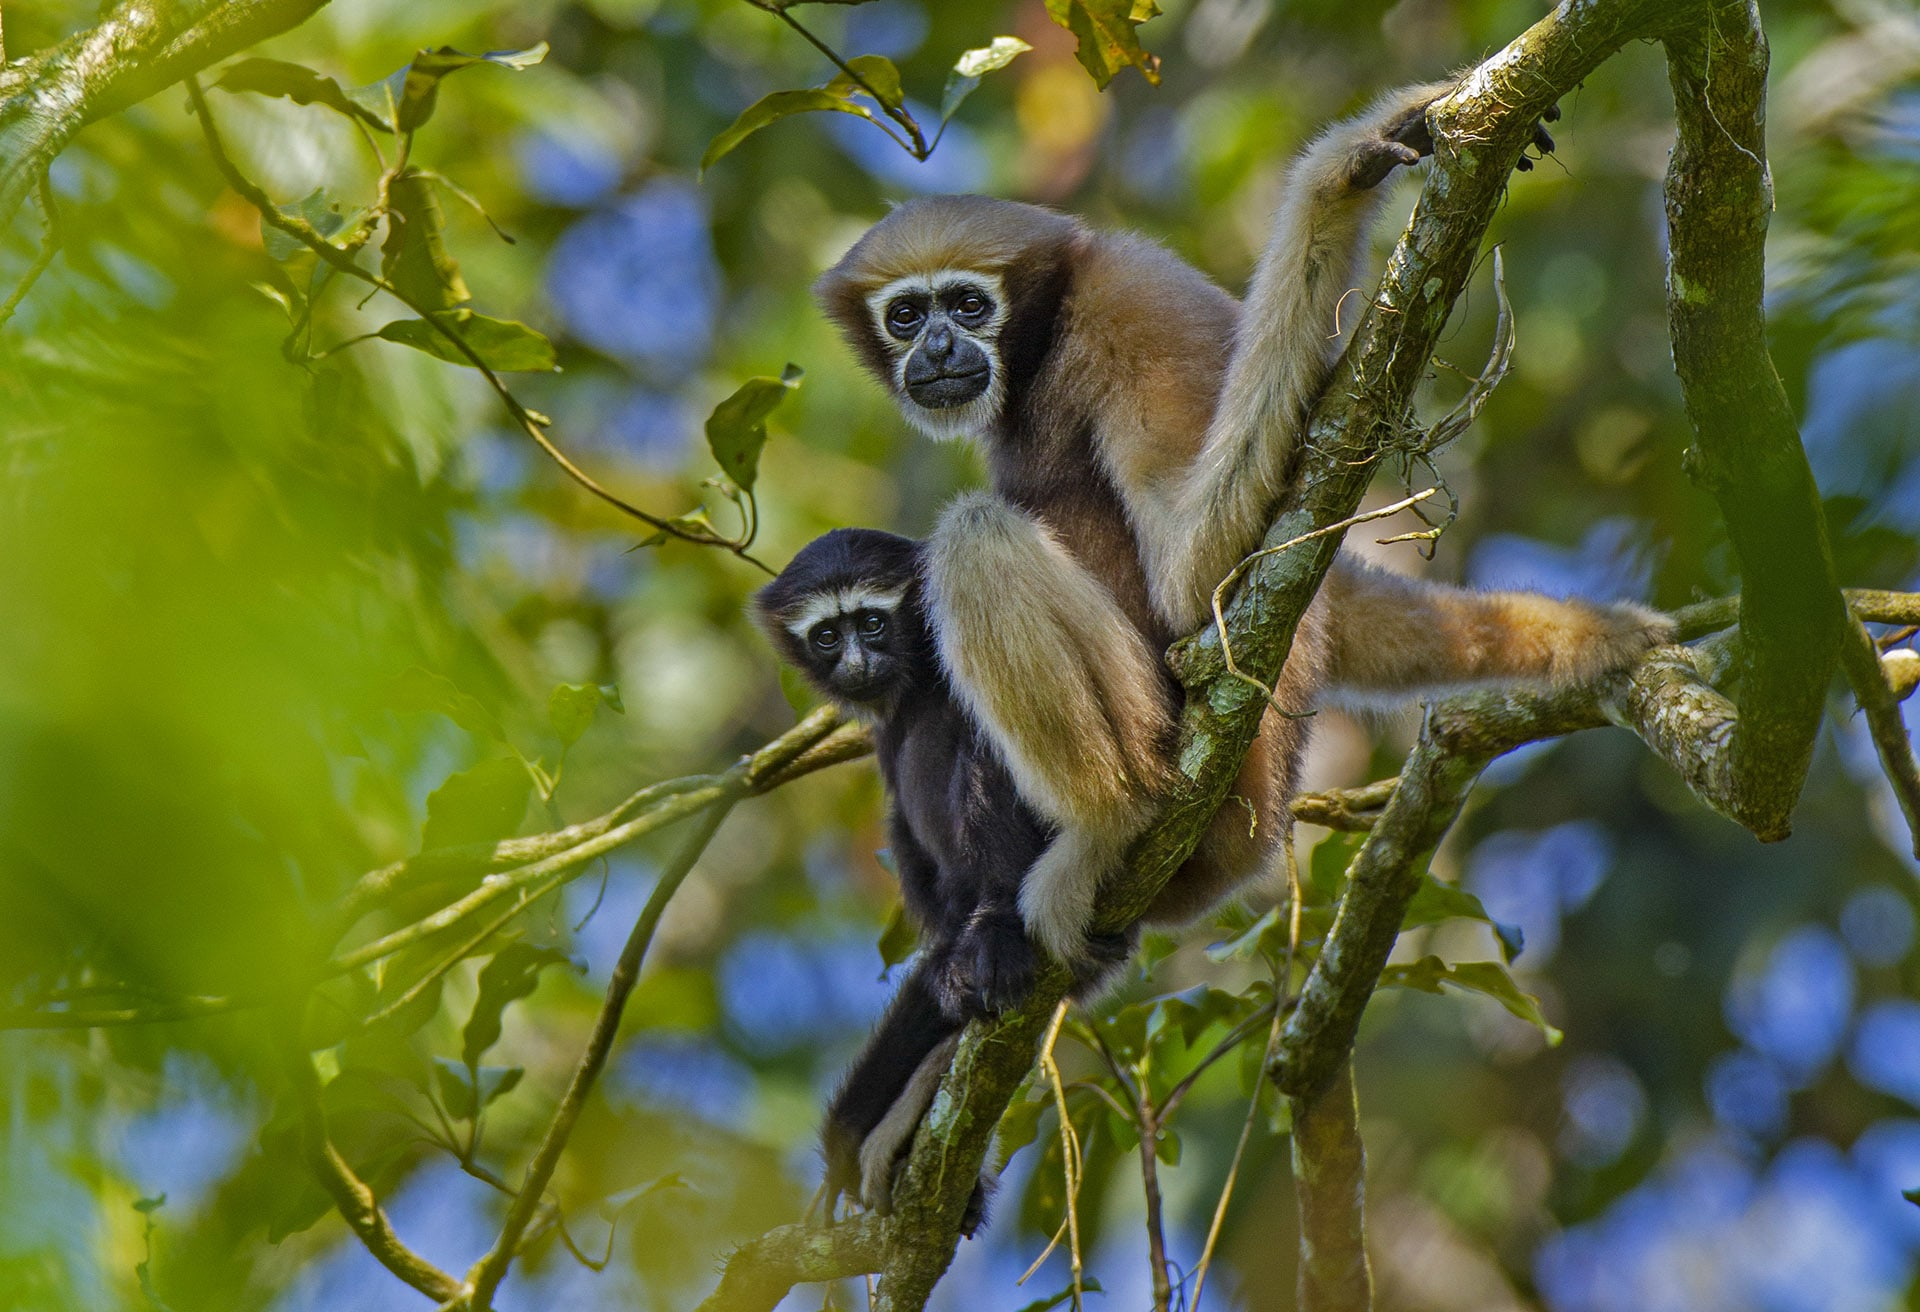 Hoolock gibbons are arboreal apes, that spend most of their lives swinging from treetops, and snacking on fruit. There are 19 species of gibbons in the world. Photo: Dhritiman Mukherjee